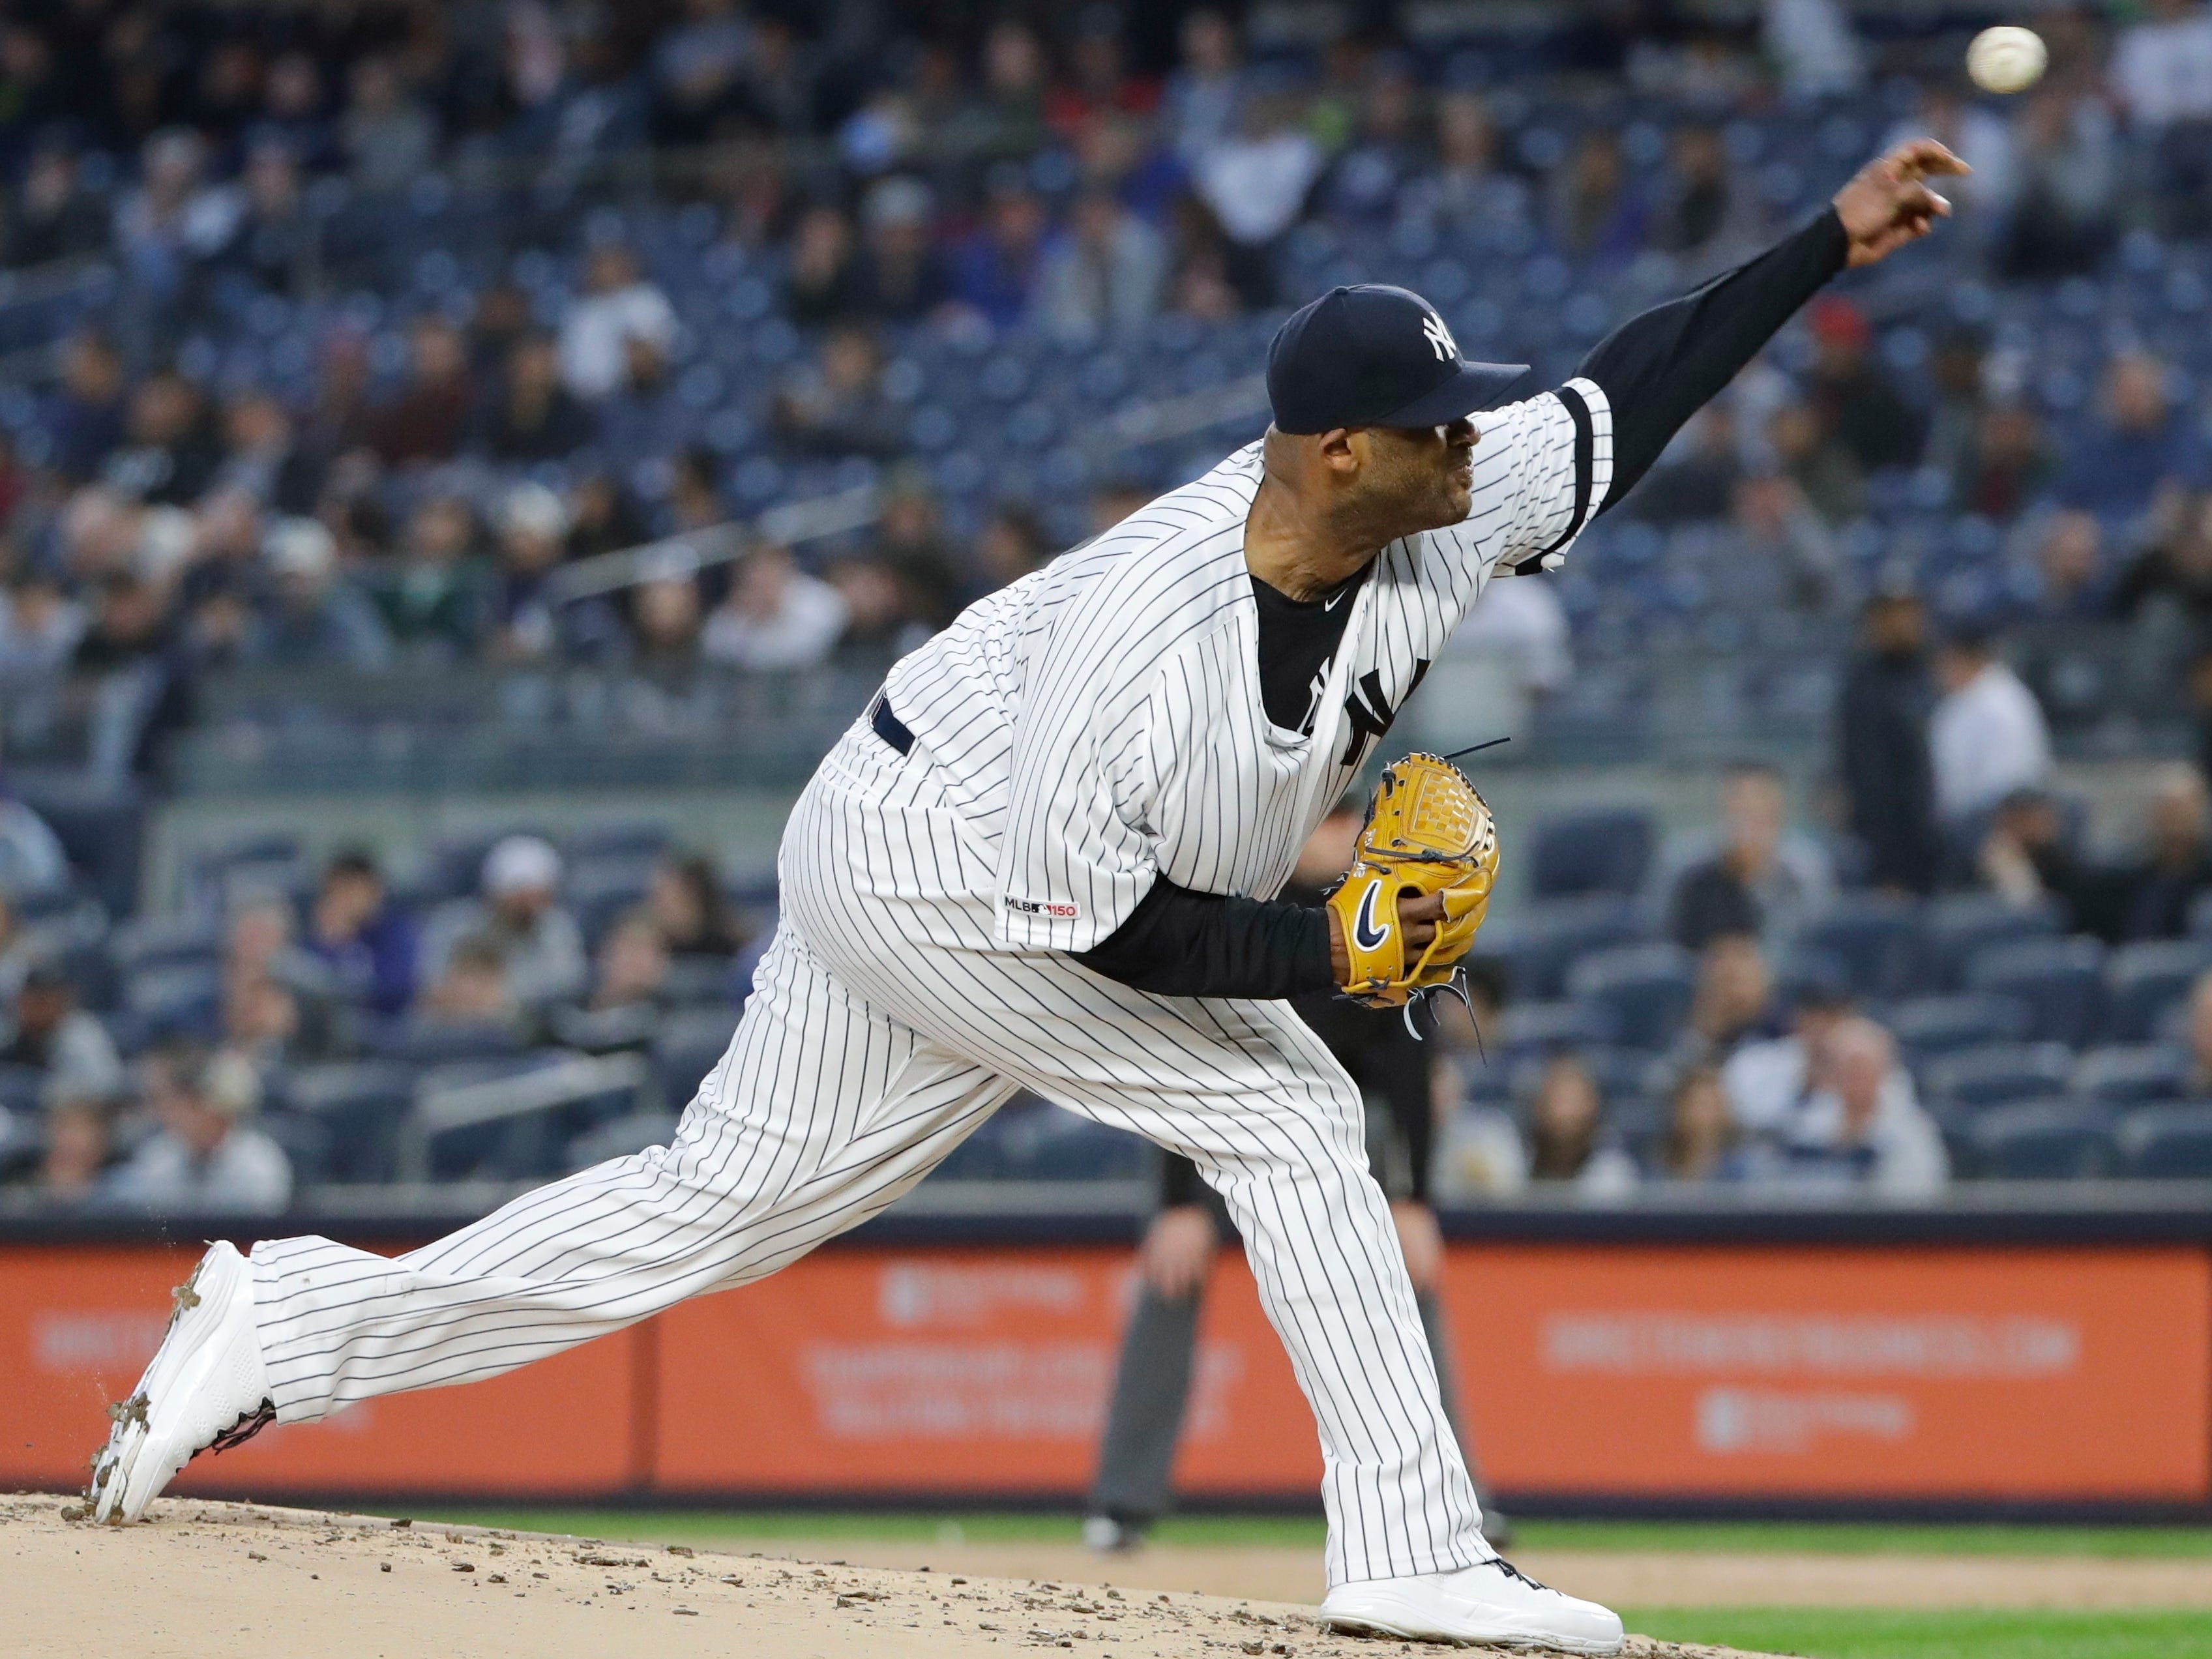 New York Yankees' CC Sabathia delivers a pitch during the first inning of a game against the Kansas City Royals, Friday, April 19, 2019, in New York.